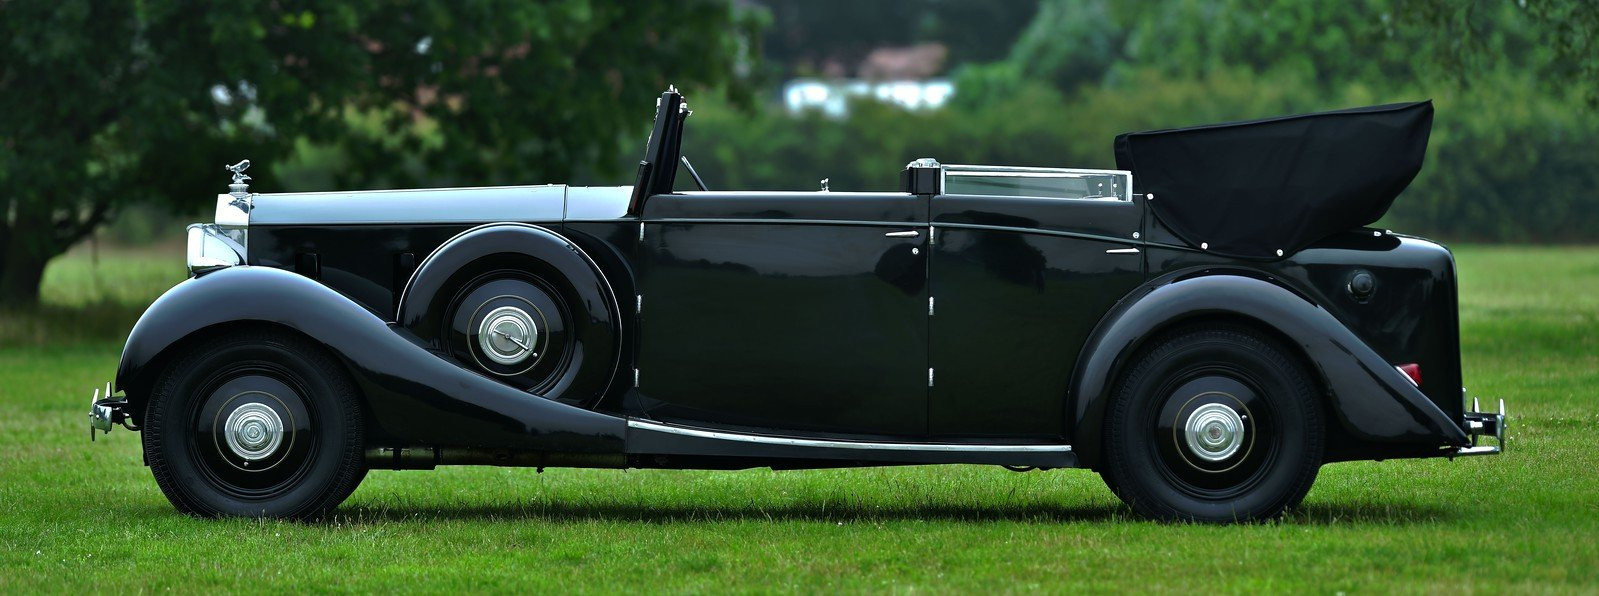 1938 Rolls-Royce Phantom III Four Light Cabriolet Coachwork  For Sale (picture 2 of 6)